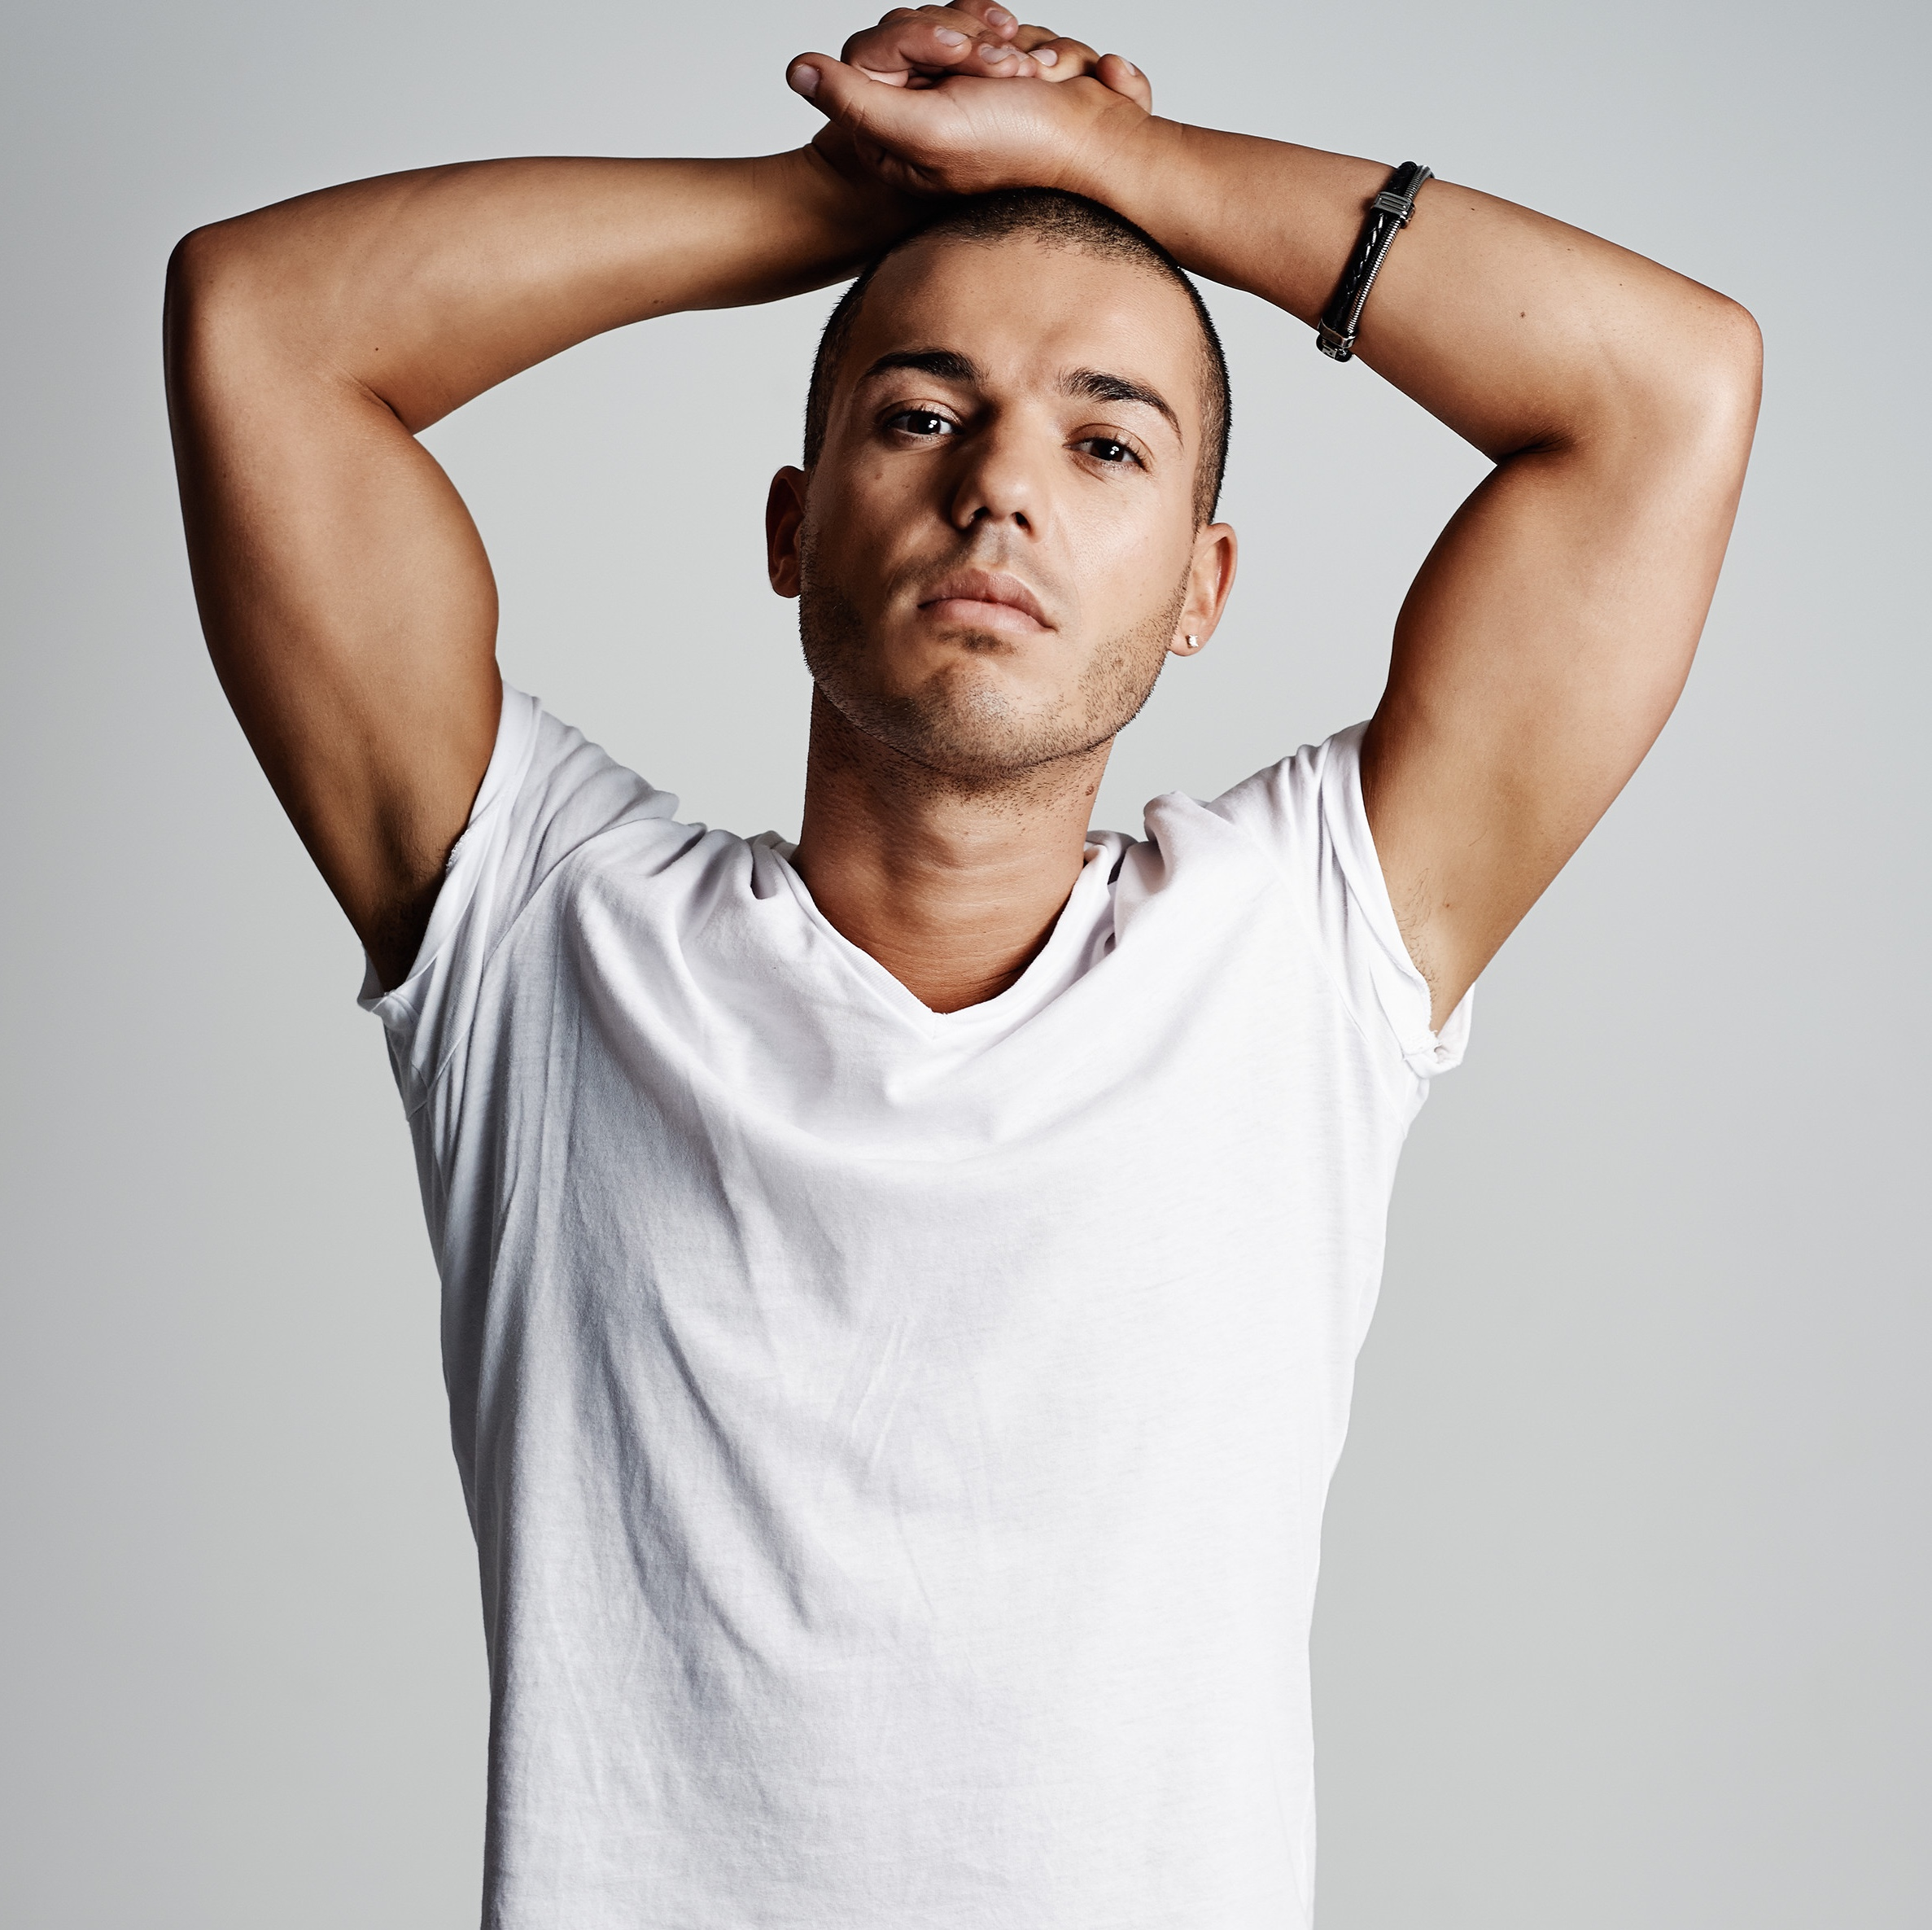 Anthony callea galleries 27